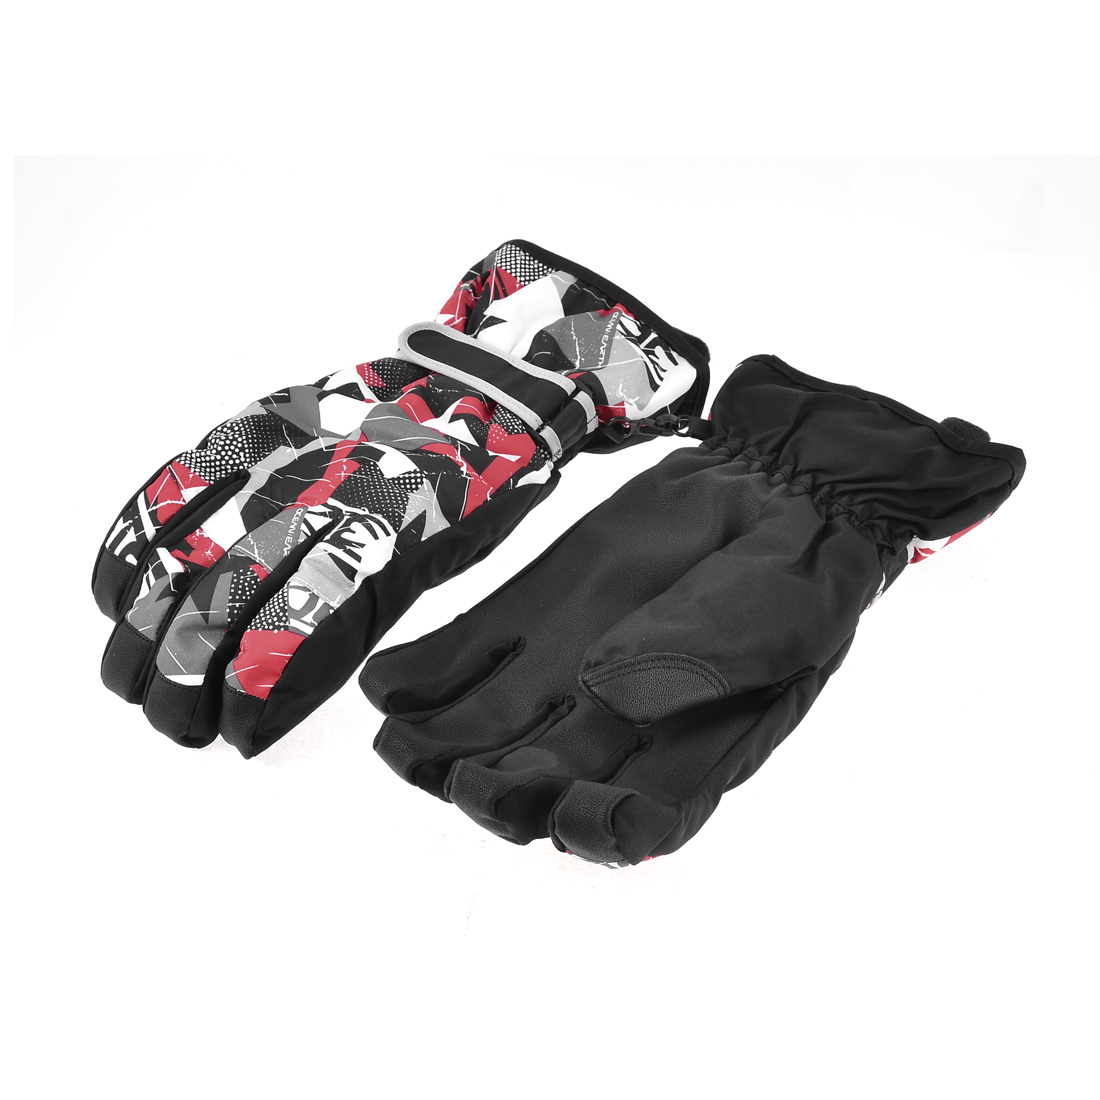 Adults Winter Outdoor Sports Skiing Ski Snowboard Gloves Black XL Pair